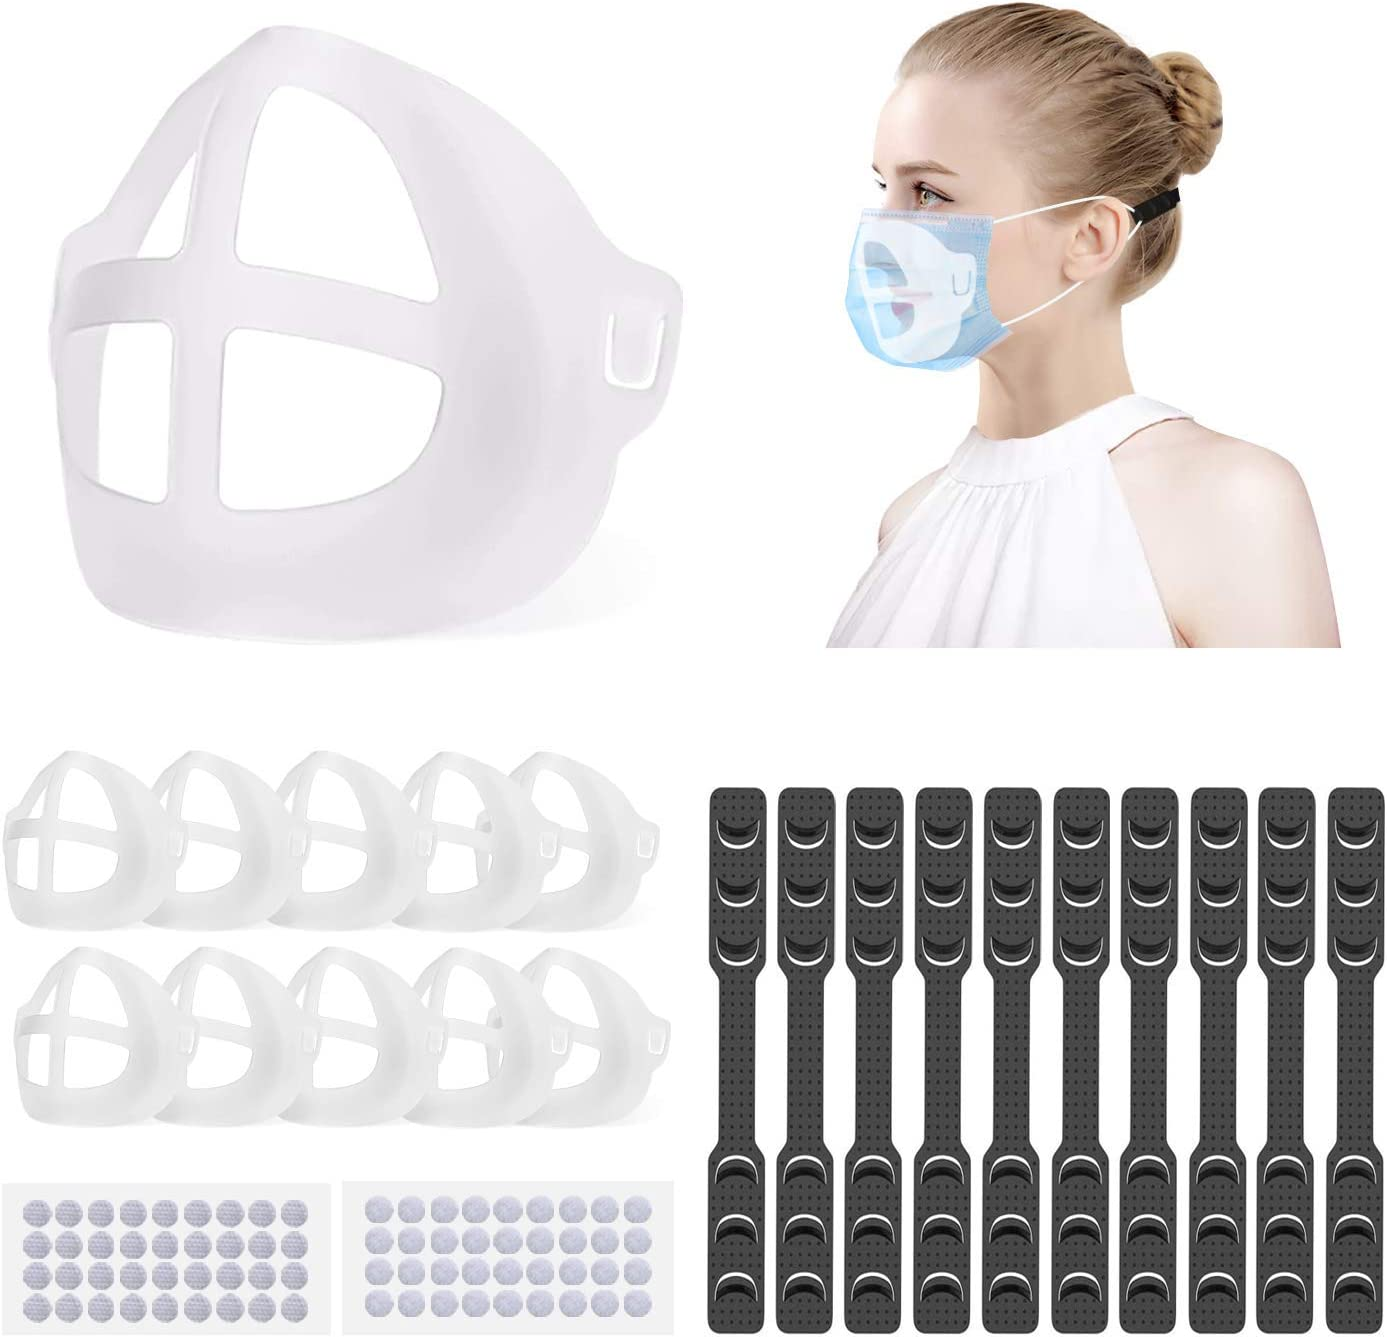 [10PCS]3D Face Bracket Internal Support Frame, Face Inner Support Frame Bracket, Reusable Lipstick Protector Protection for Adults, Clear - -